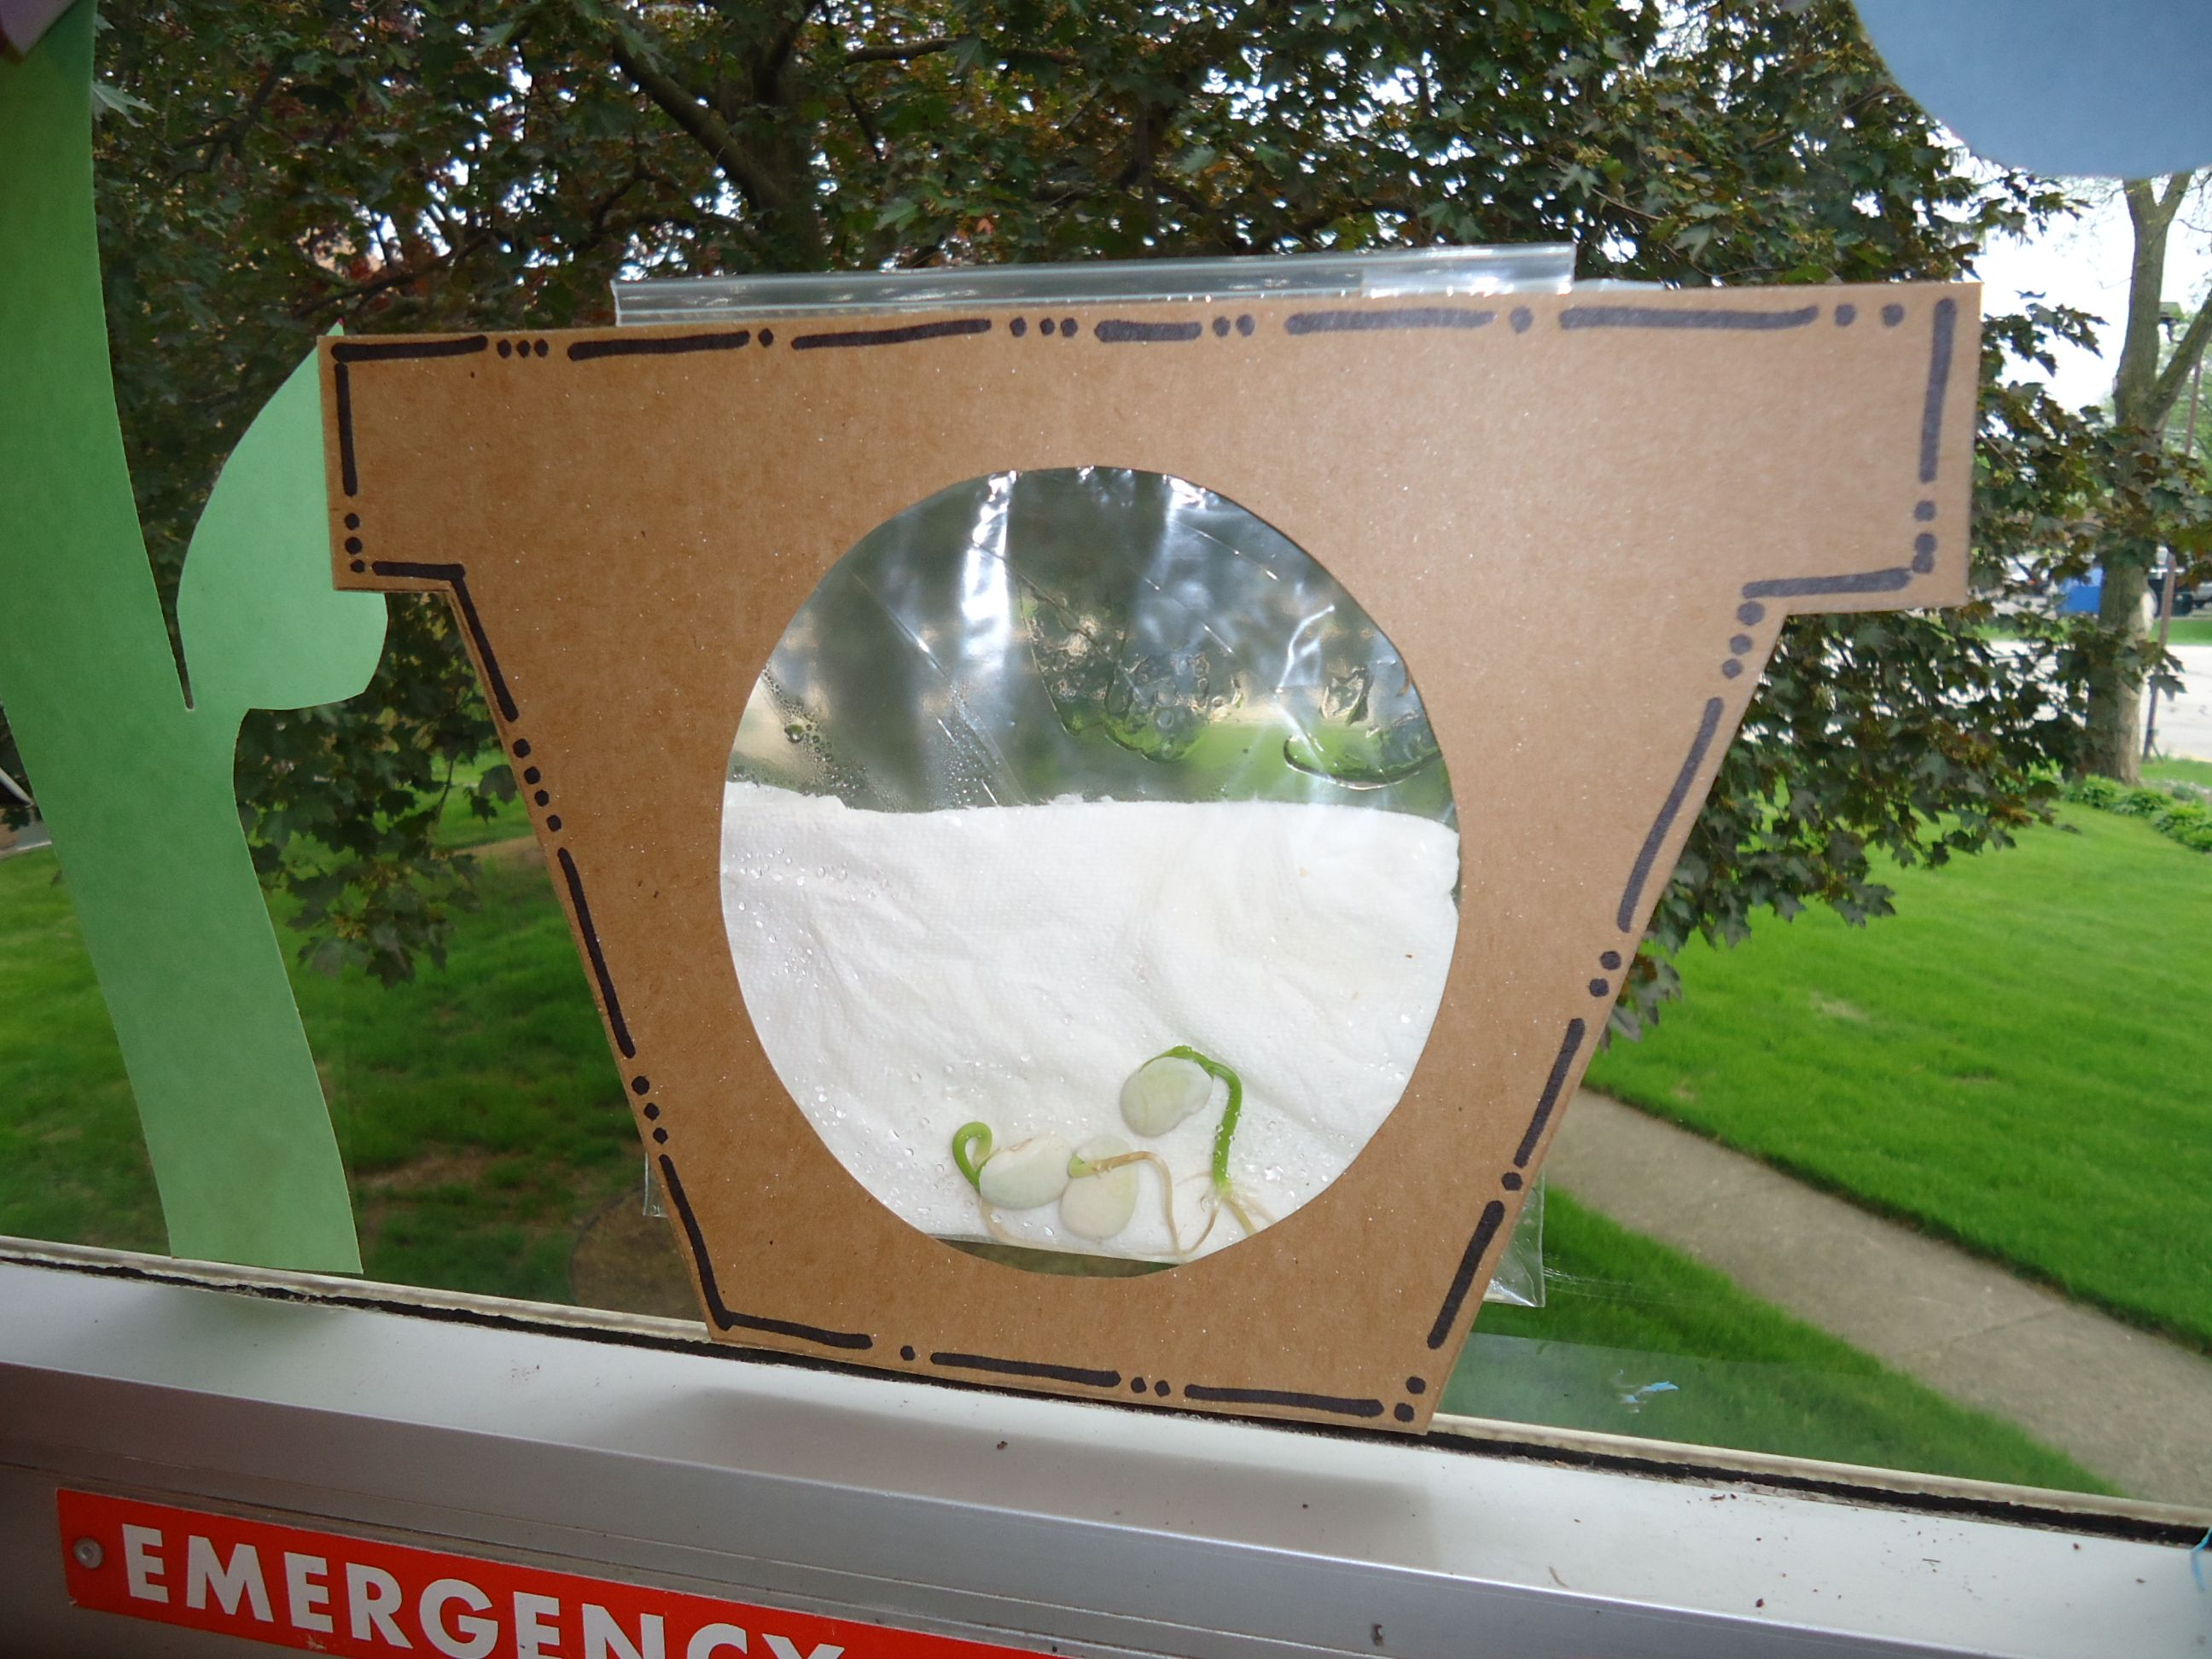 Lima Bean Planting This Cute Frame Made To Look Like A See Through Pot Added Some Charm To